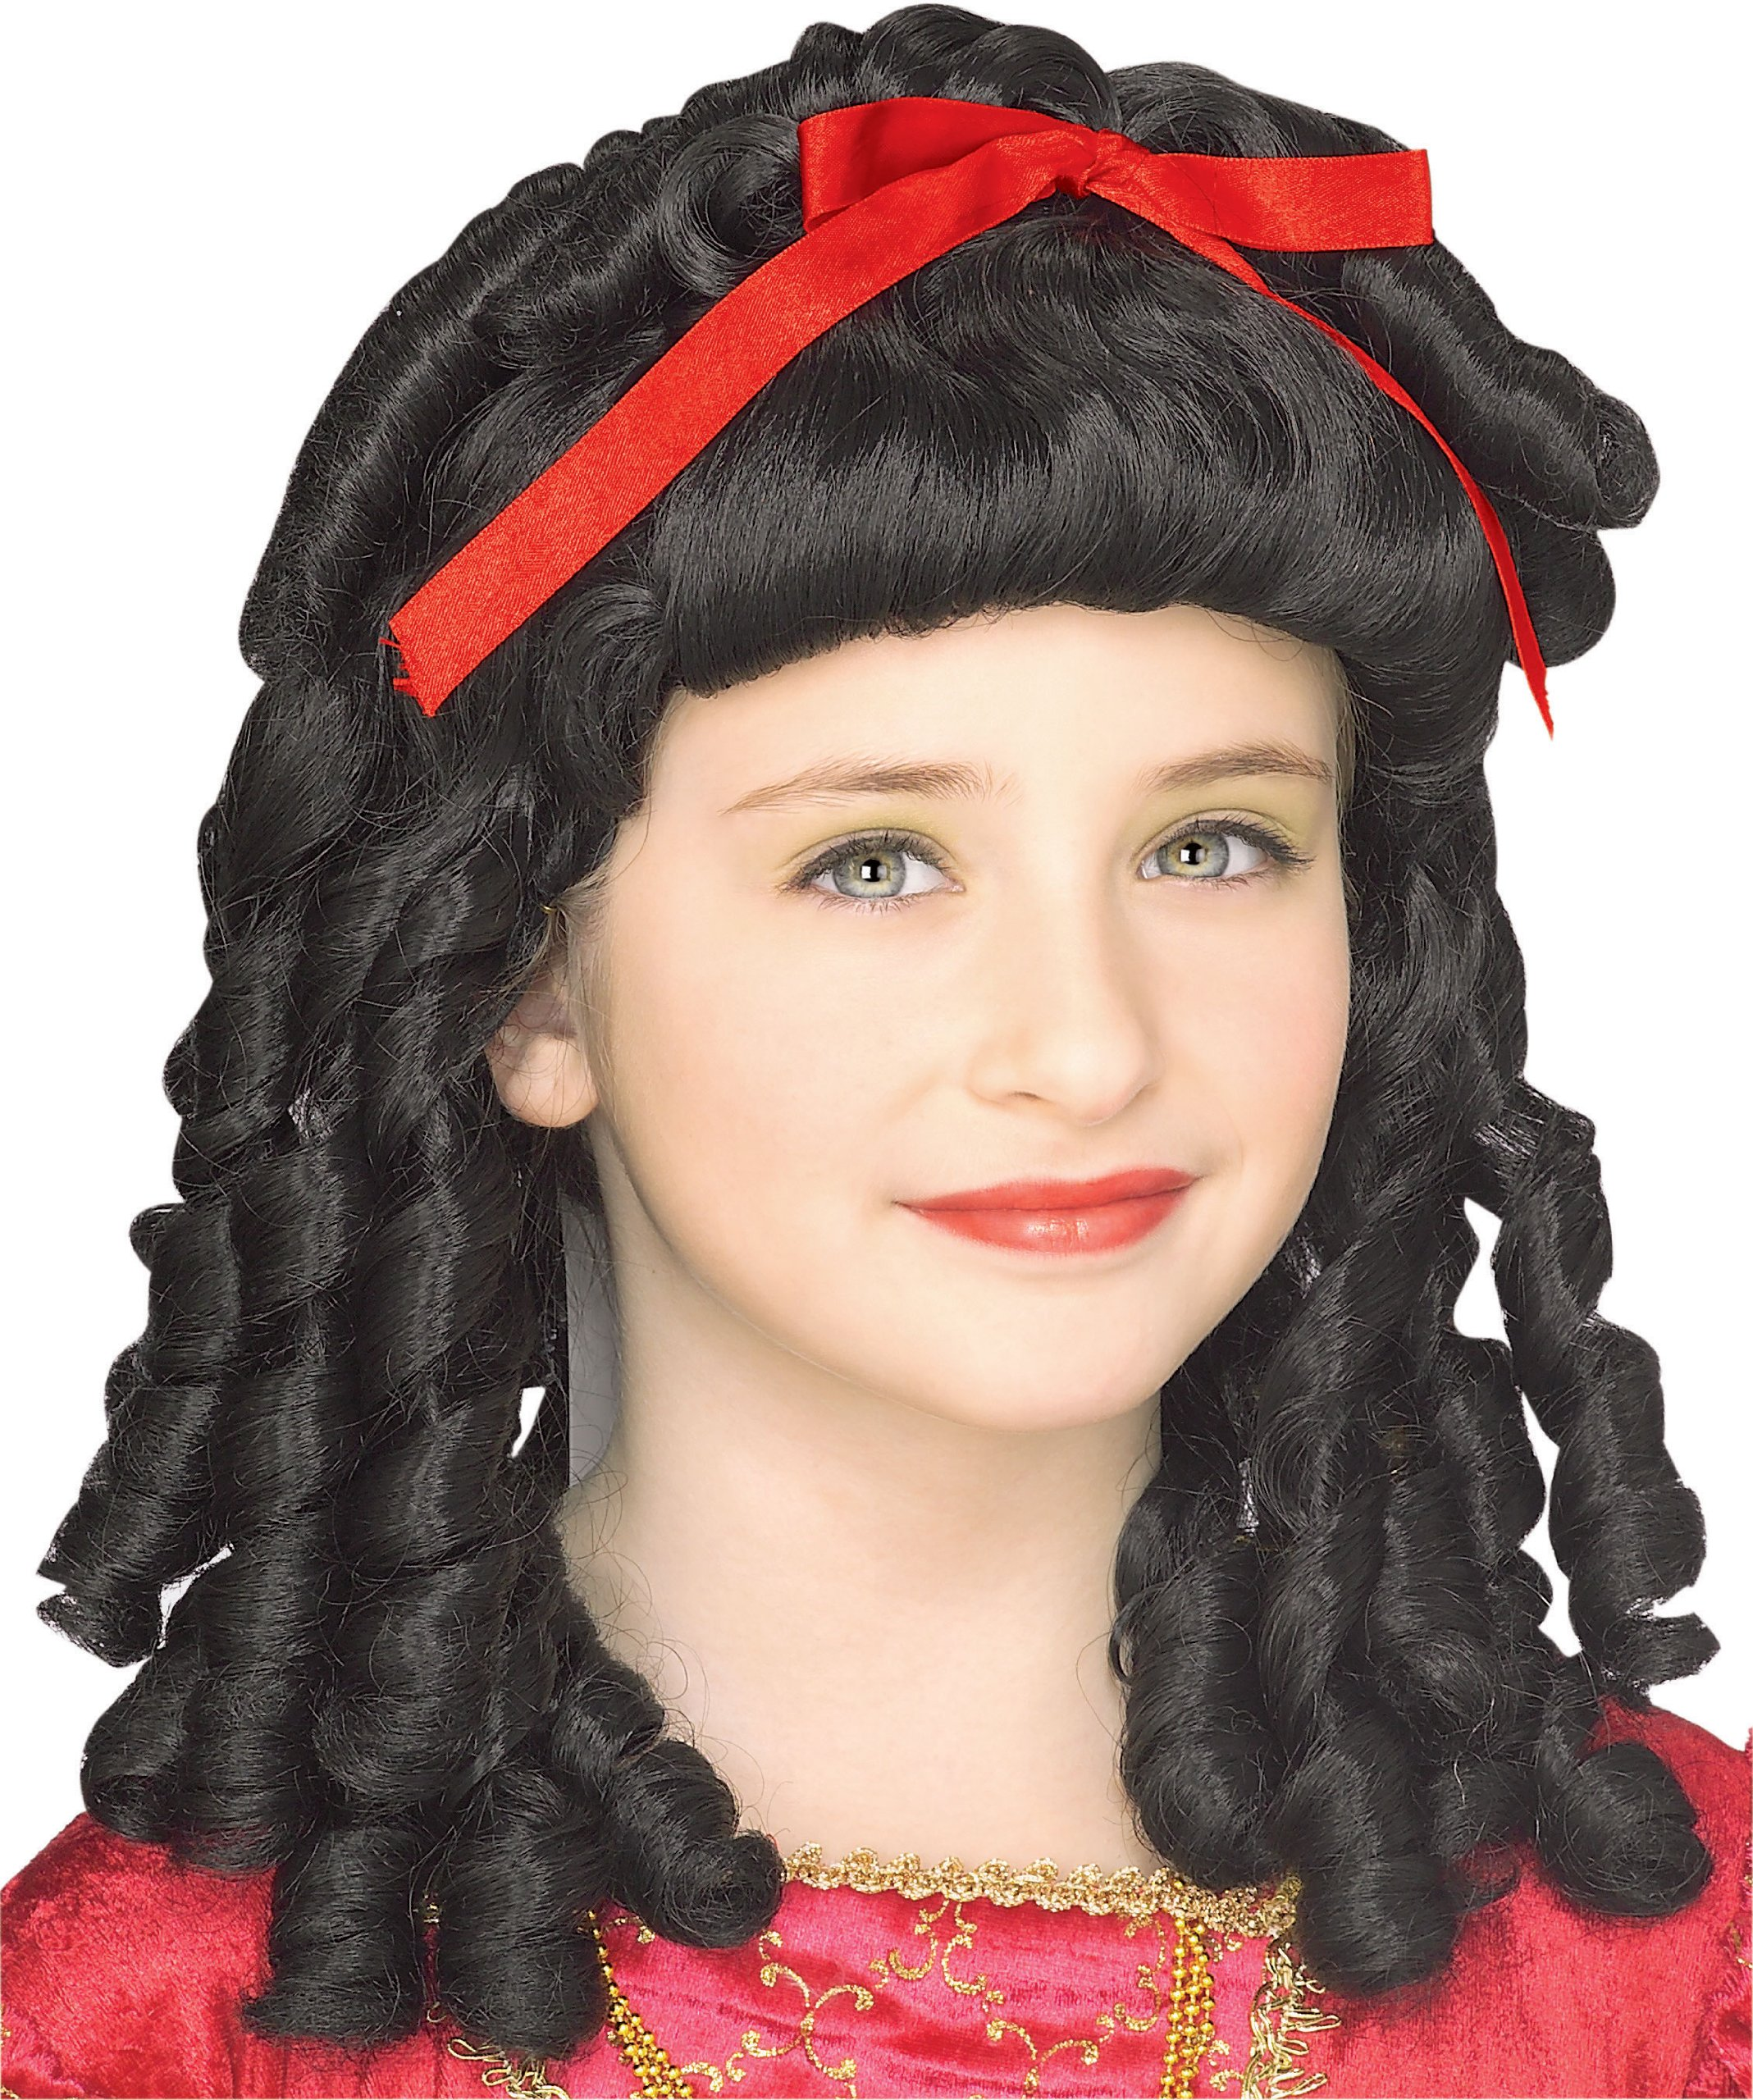 Rubies Storybook Princess Childs Costume Wig, Black Curls product image